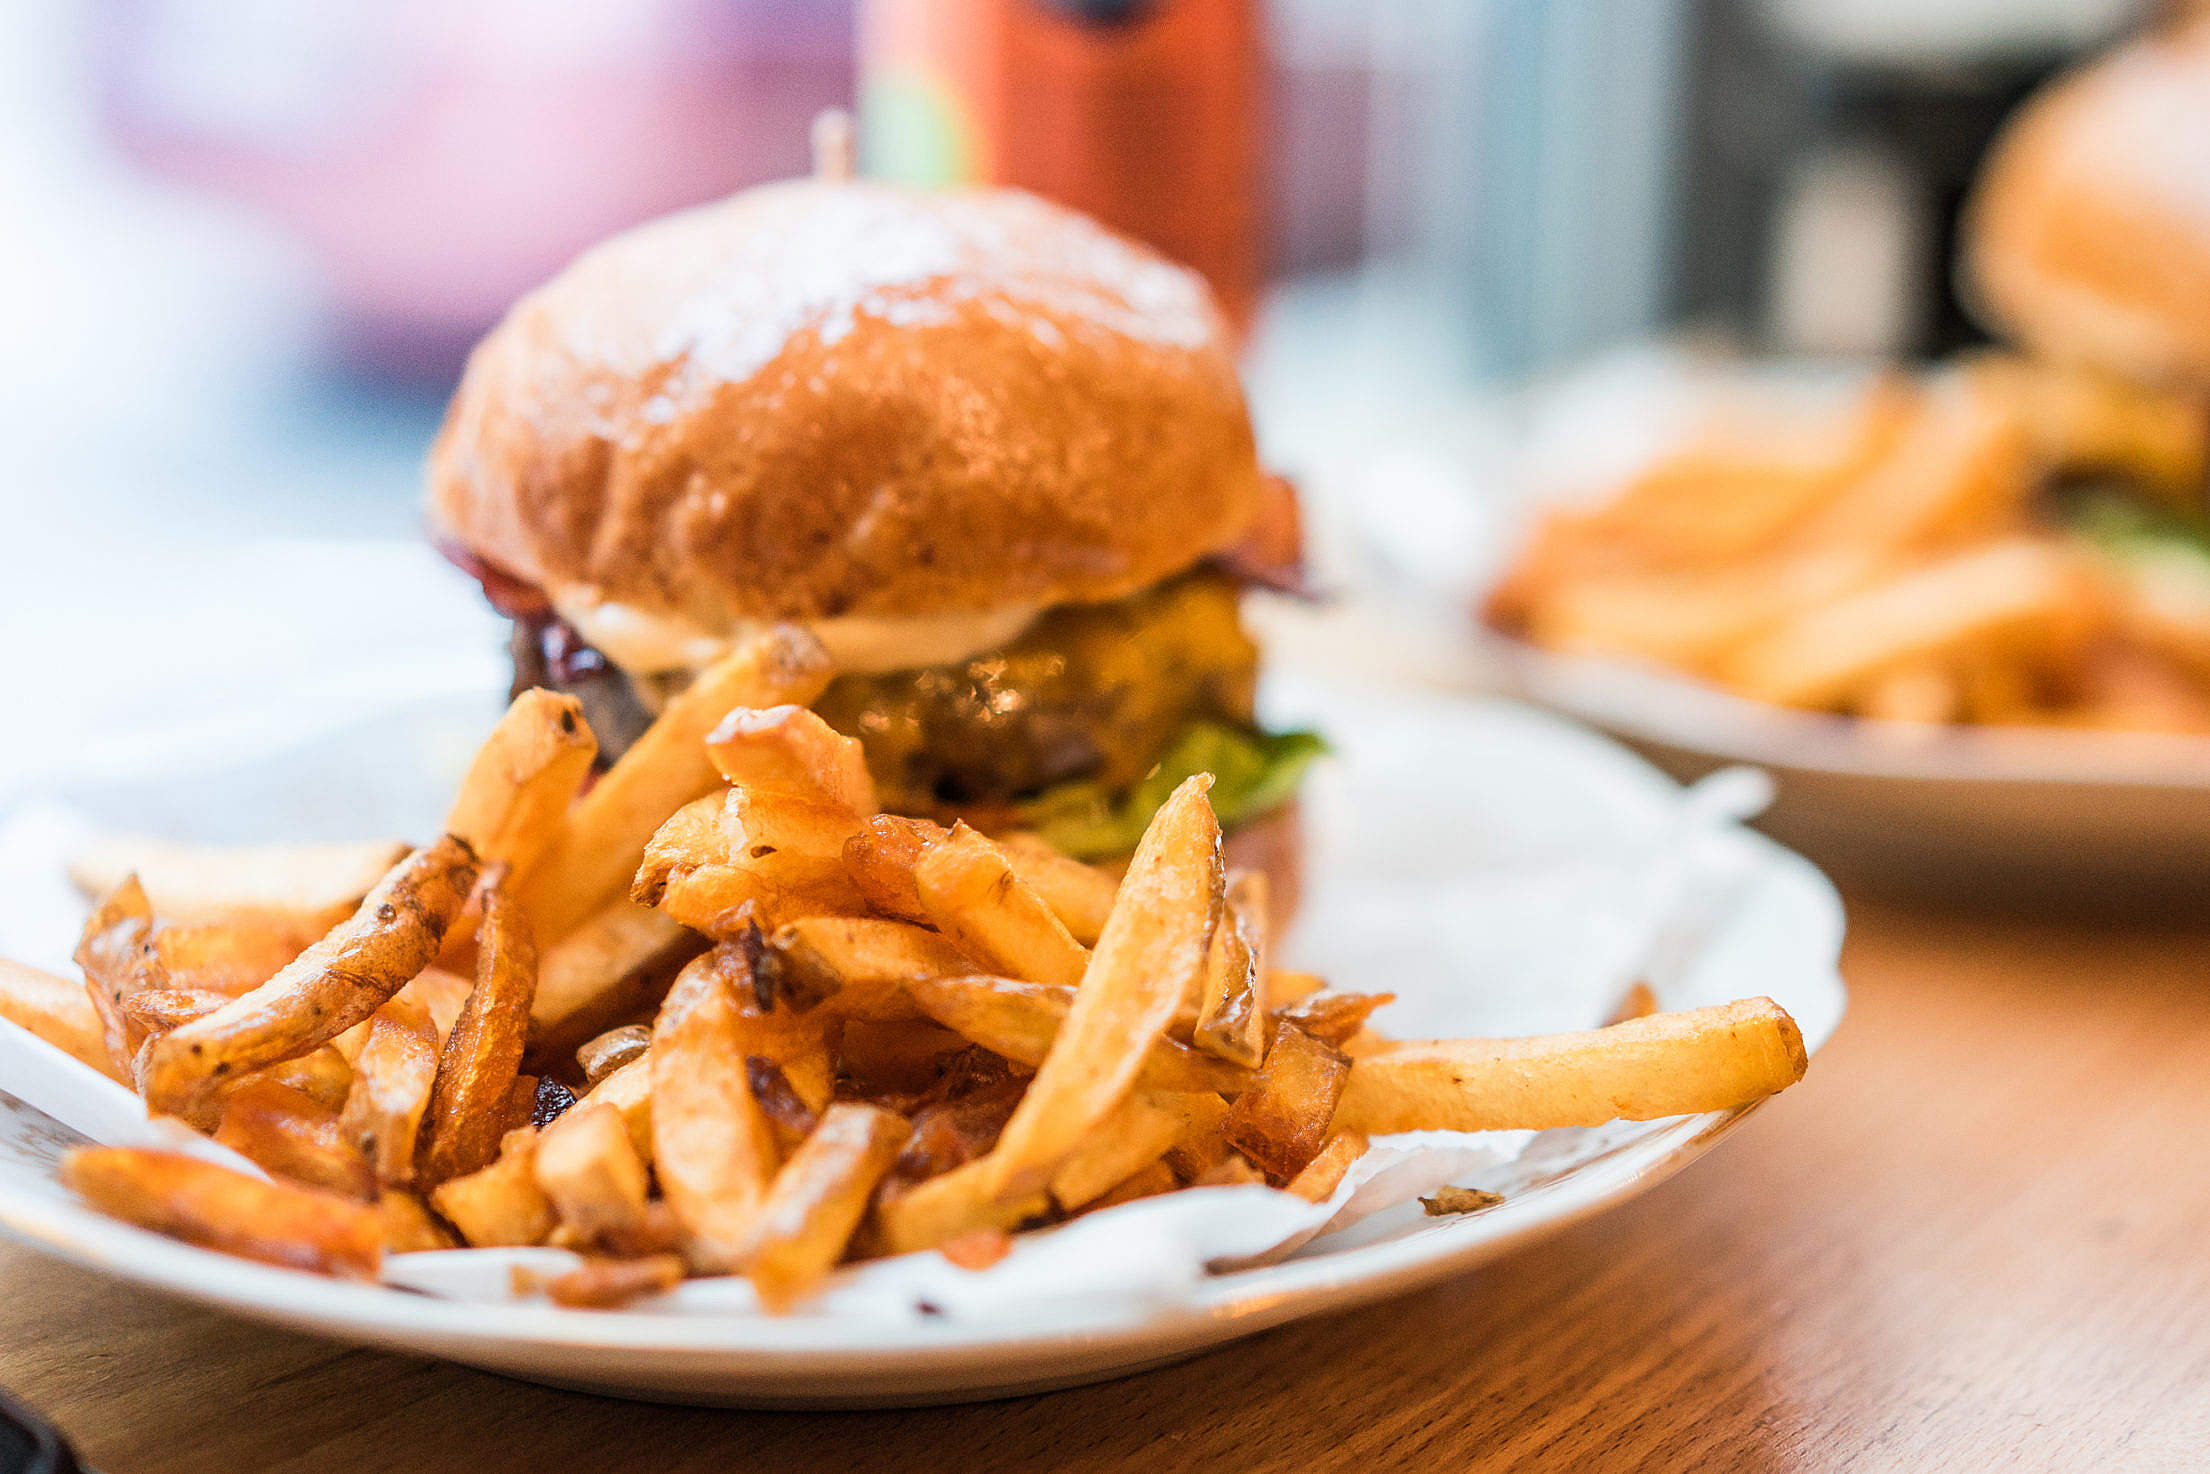 French Fries and Fresh Bacon Burger Free Stock Photo